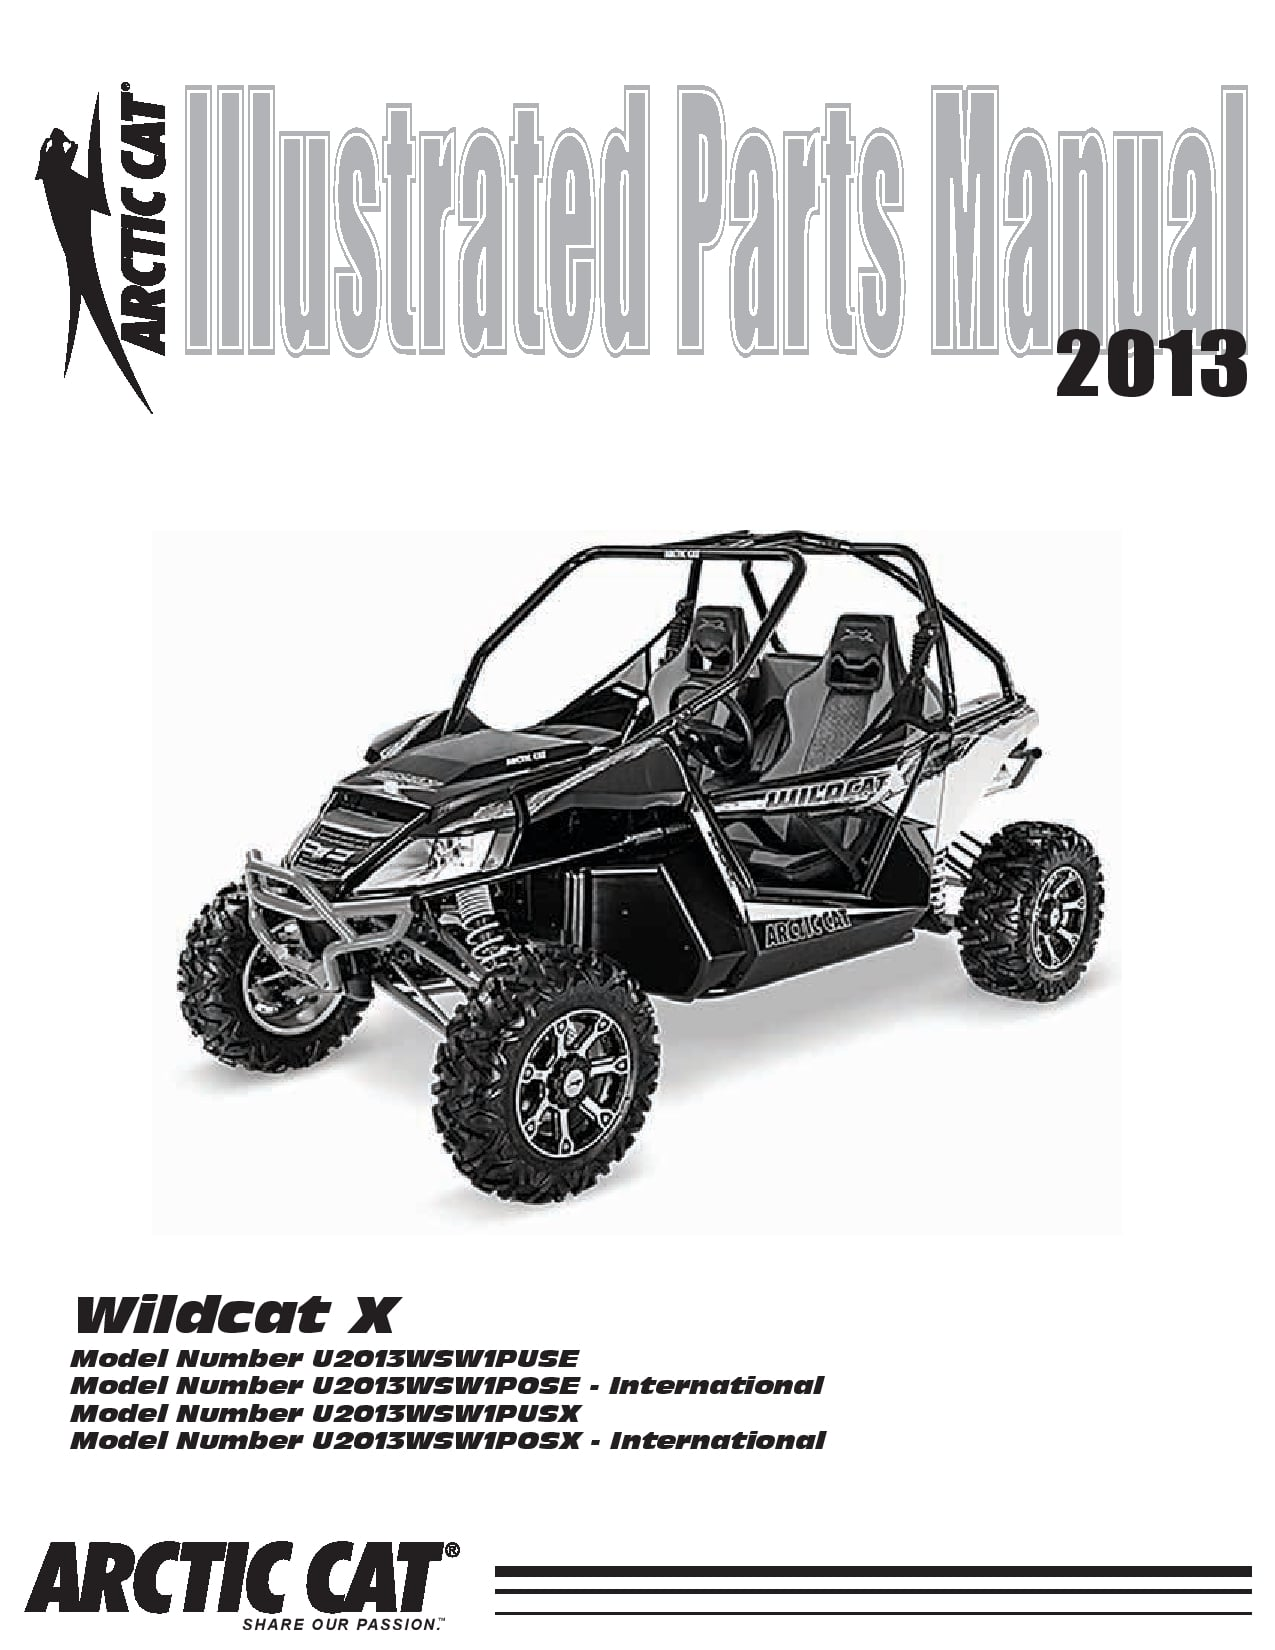 ARCTIC CAT 2013 Wildcat X part manual PDF Download